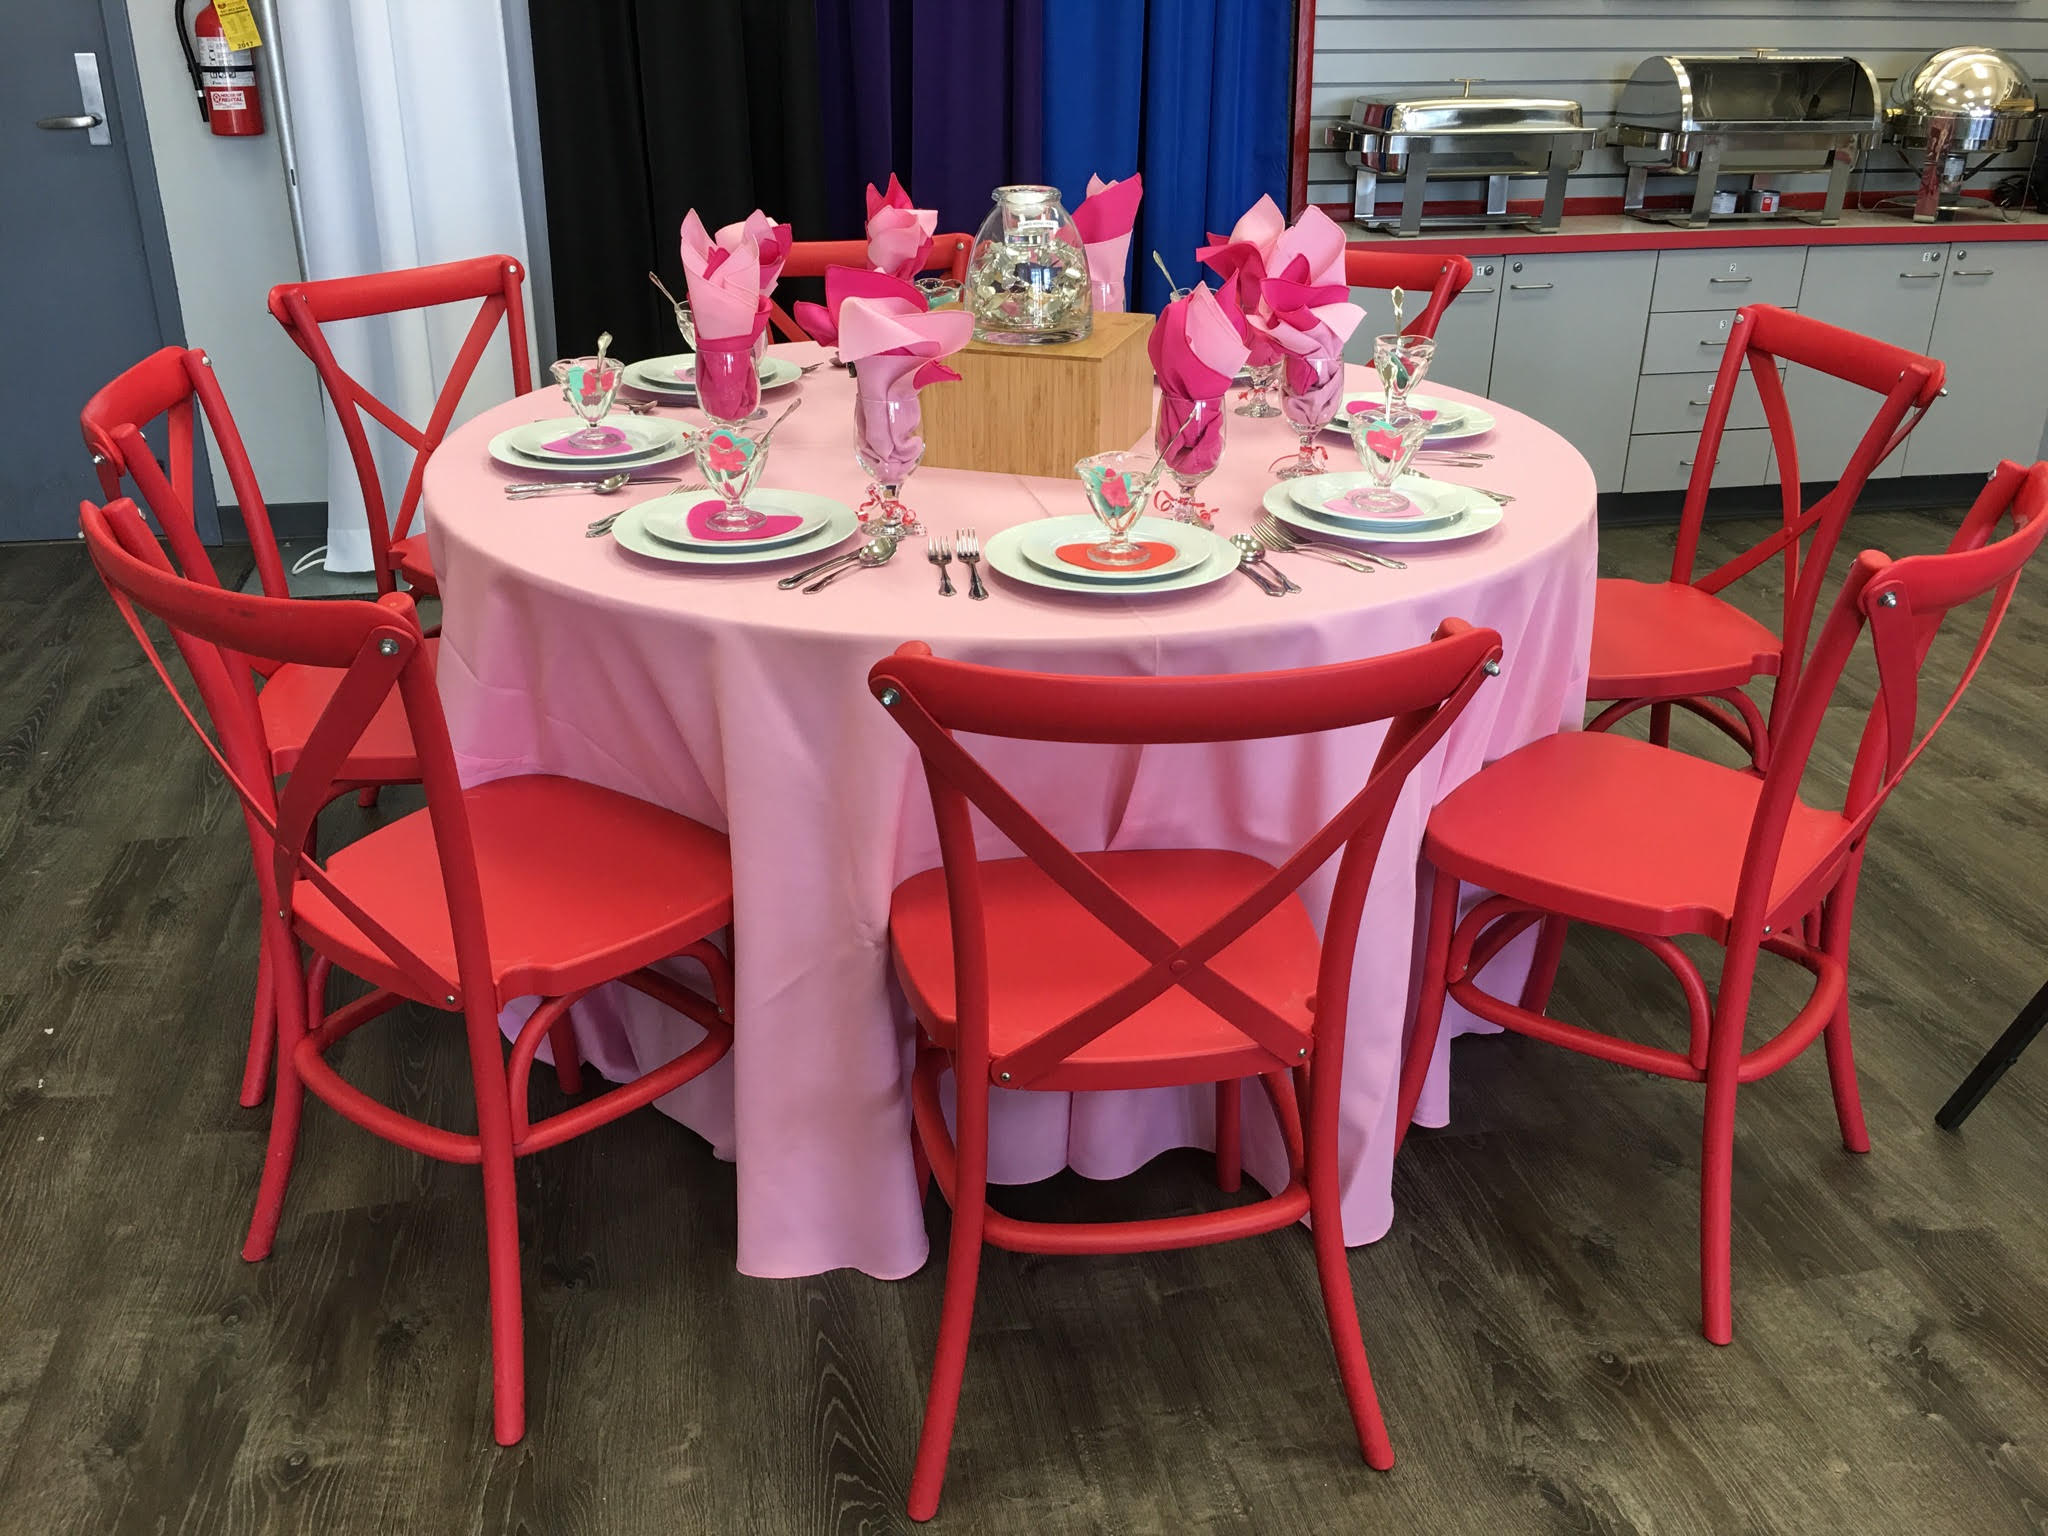 37 red cross back chairs pink tablecloth